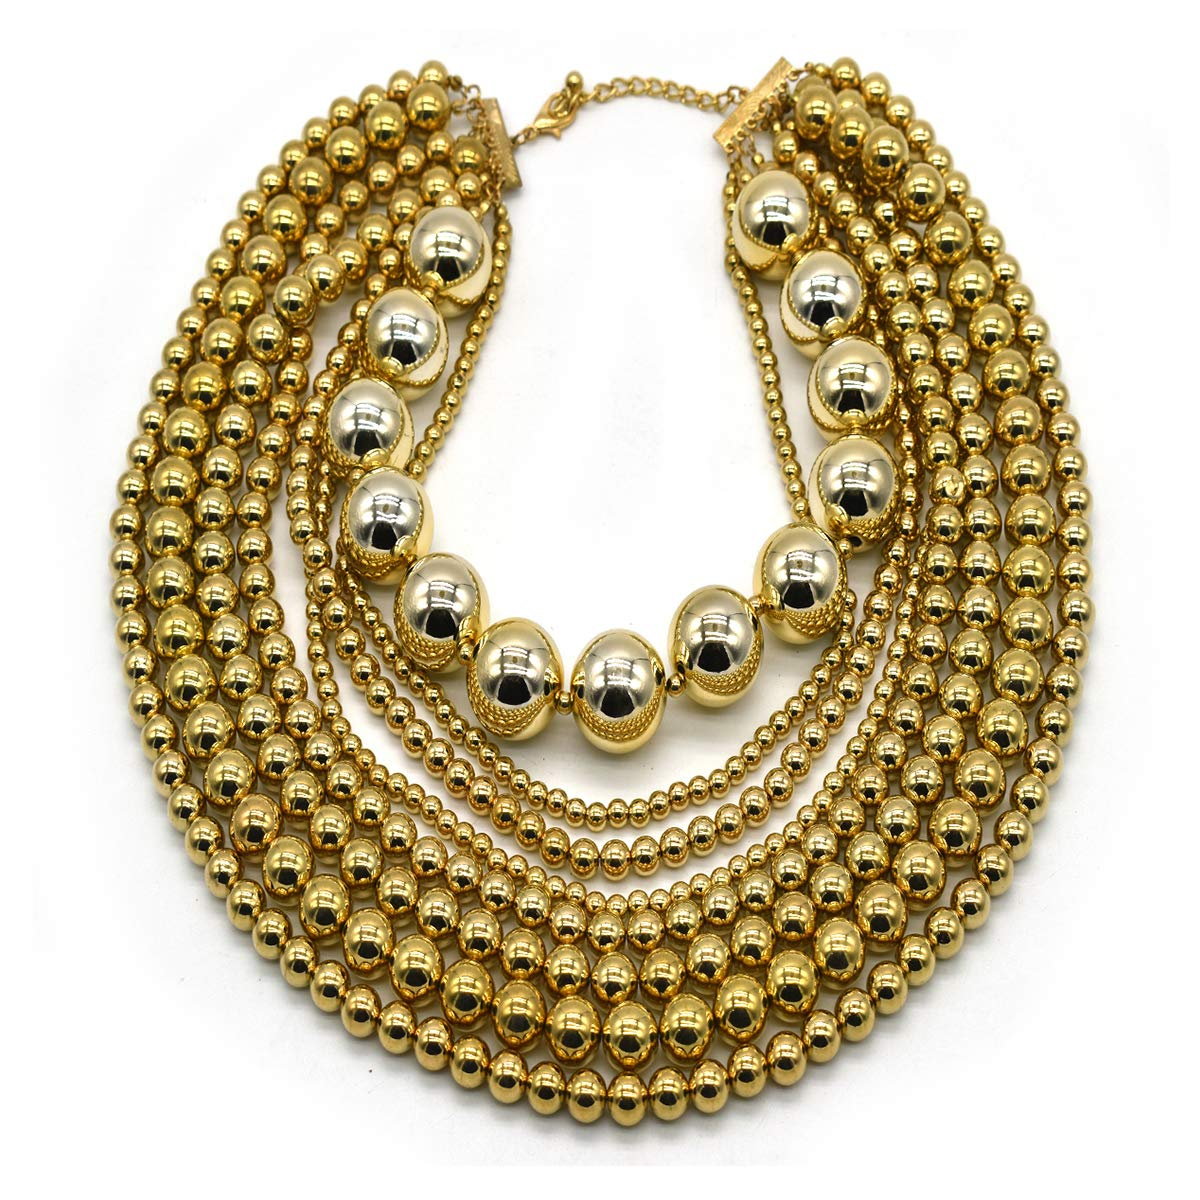 Simulated Pearl Choker Necklace for Women Bridal Wedding Pearl Statement Necklace